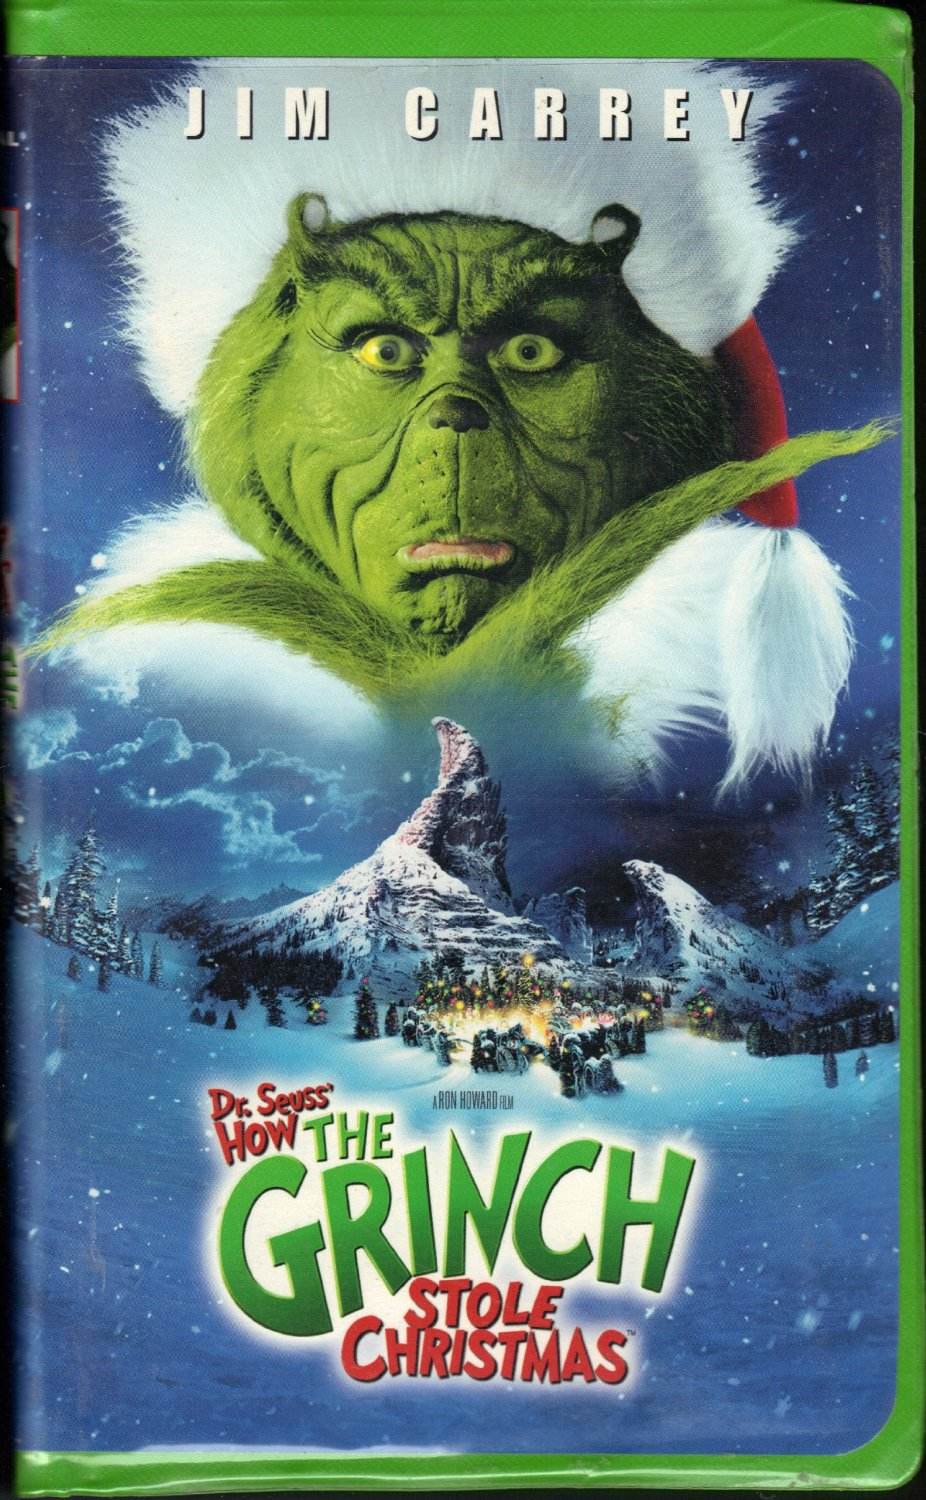 How_the_grinch_stole_christmas_2001_vhs.jpg